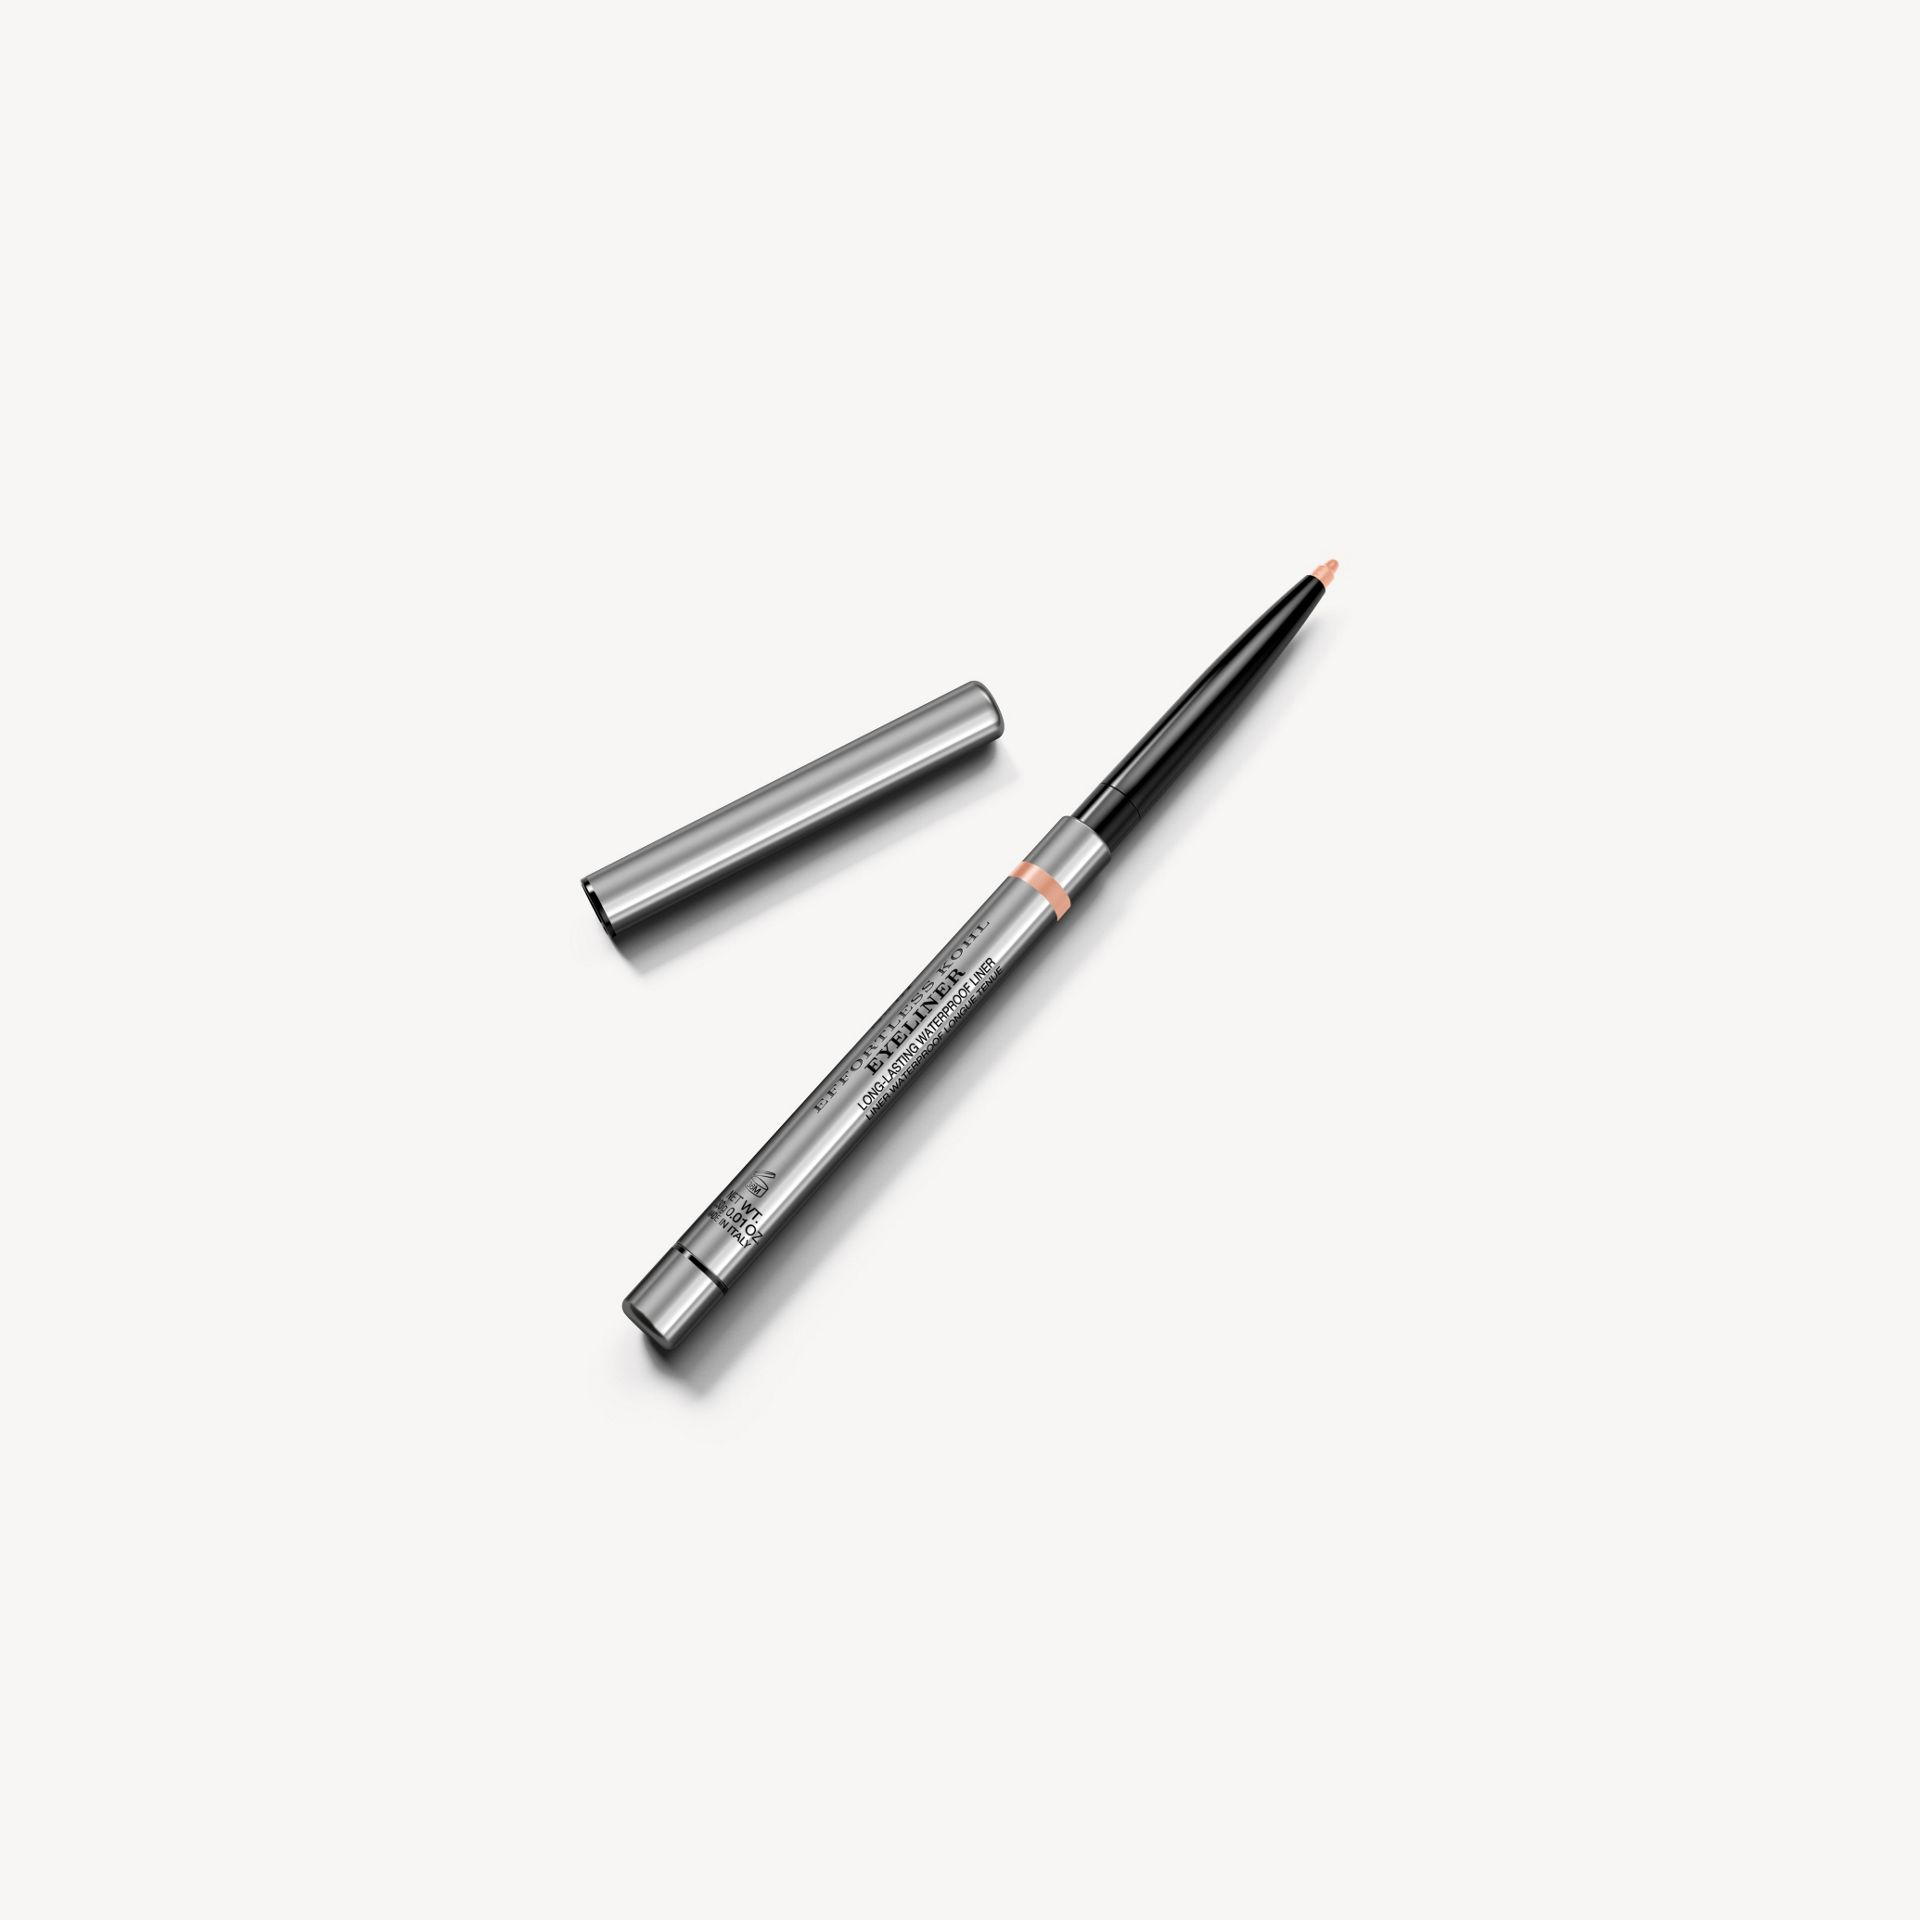 Контурный карандаш Effortless Kohl Eyeliner, Stone № 00 - изображение 1